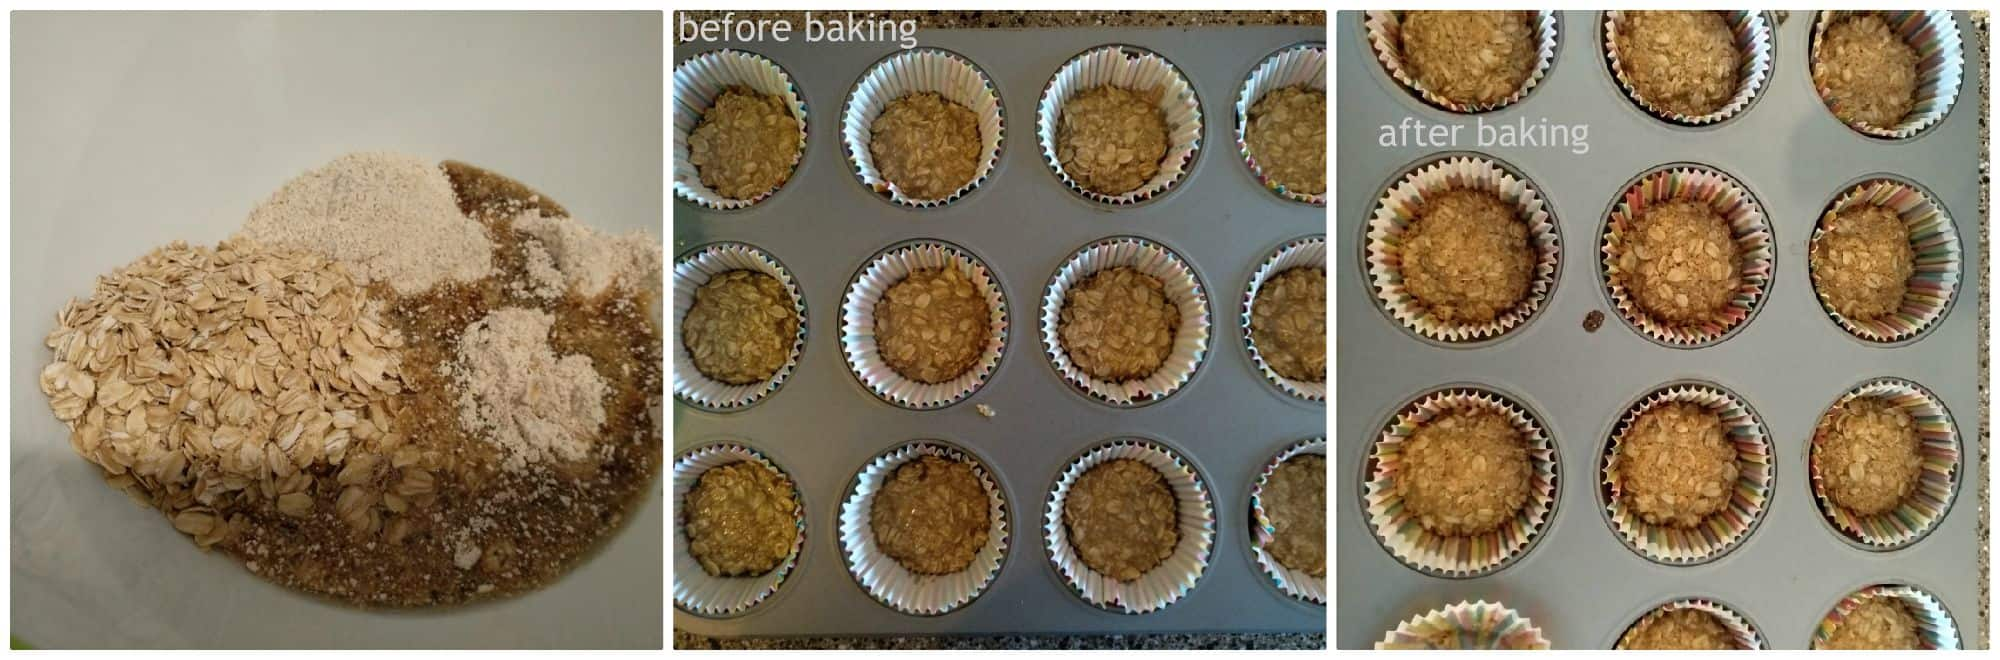 step by step preparation of oatmeal chocolate chip muffin cookies